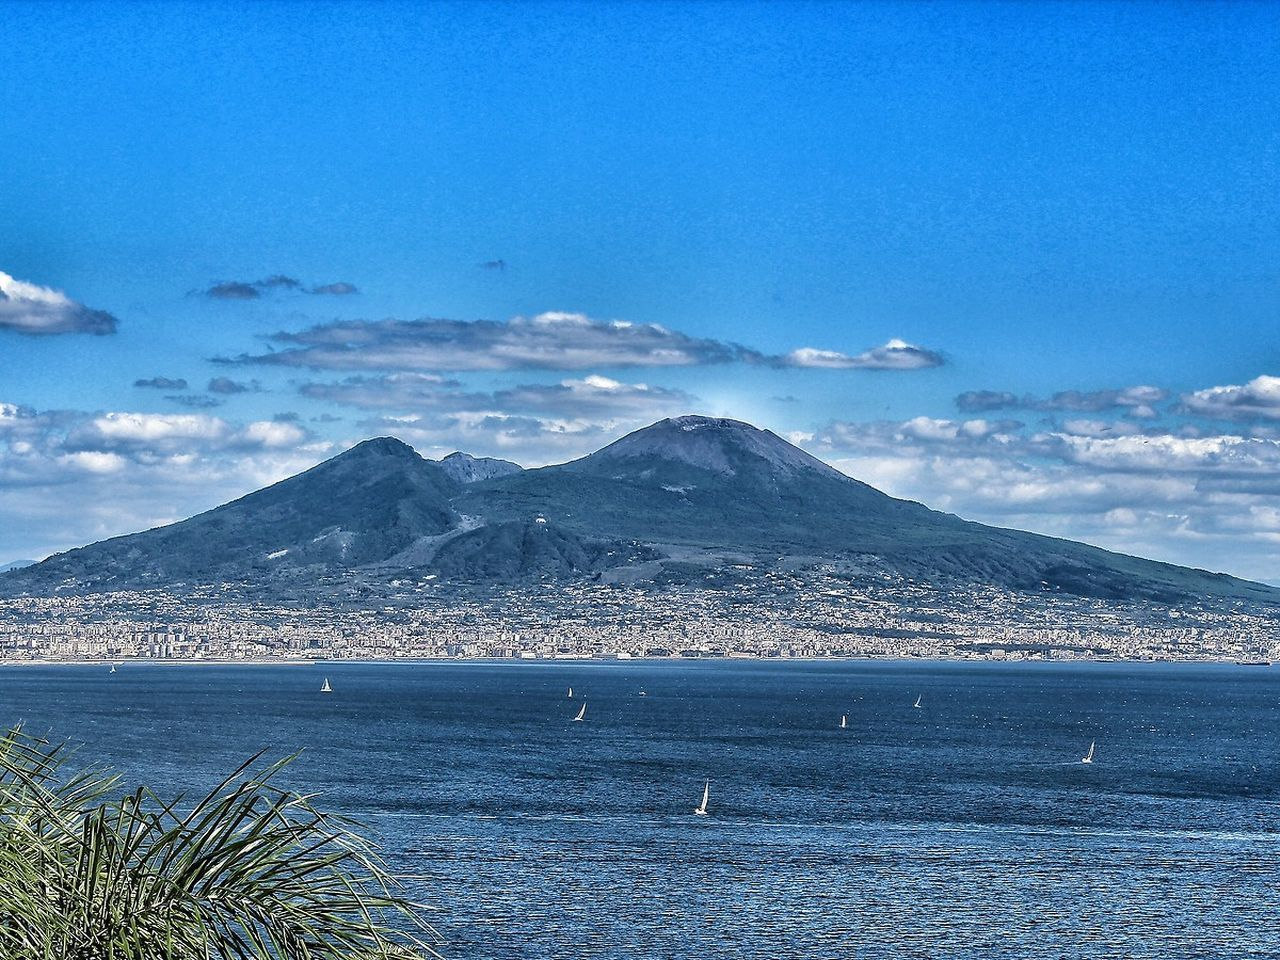 Napoli Napolipix Napoli ❤ Vesuvius  Vesuvio Landscape Beautiful City Vulcanology Beauty In Nature Sea Natural Beauty Vesuvio Da Lontano Naples, Italy